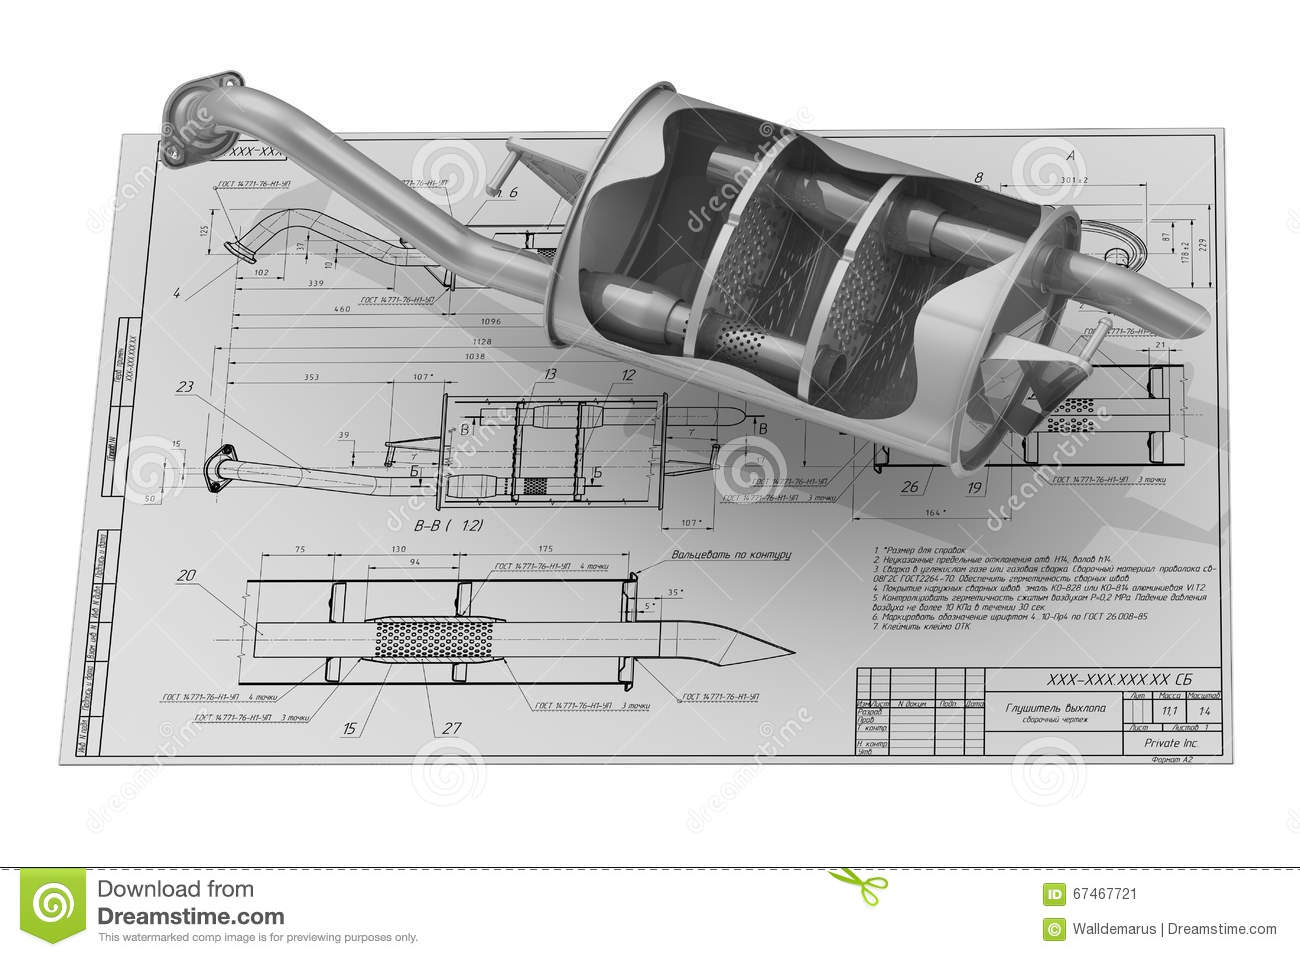 Car Silencer Diagram Residential Electrical Symbols Alarm Wiring Diagrams Exhaust On The Drawing Background Stock Illustration Image 67467721 Blueprints